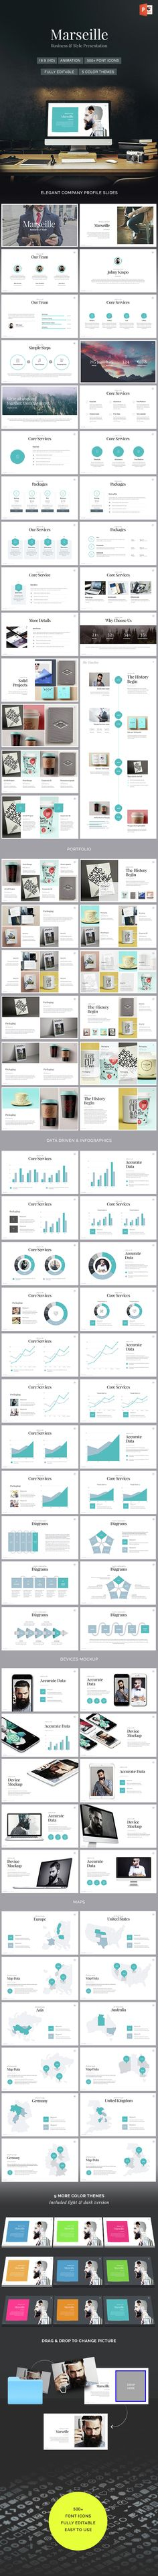 Marseille - Elegant Powerpoint Template (PowerPoint Templates)